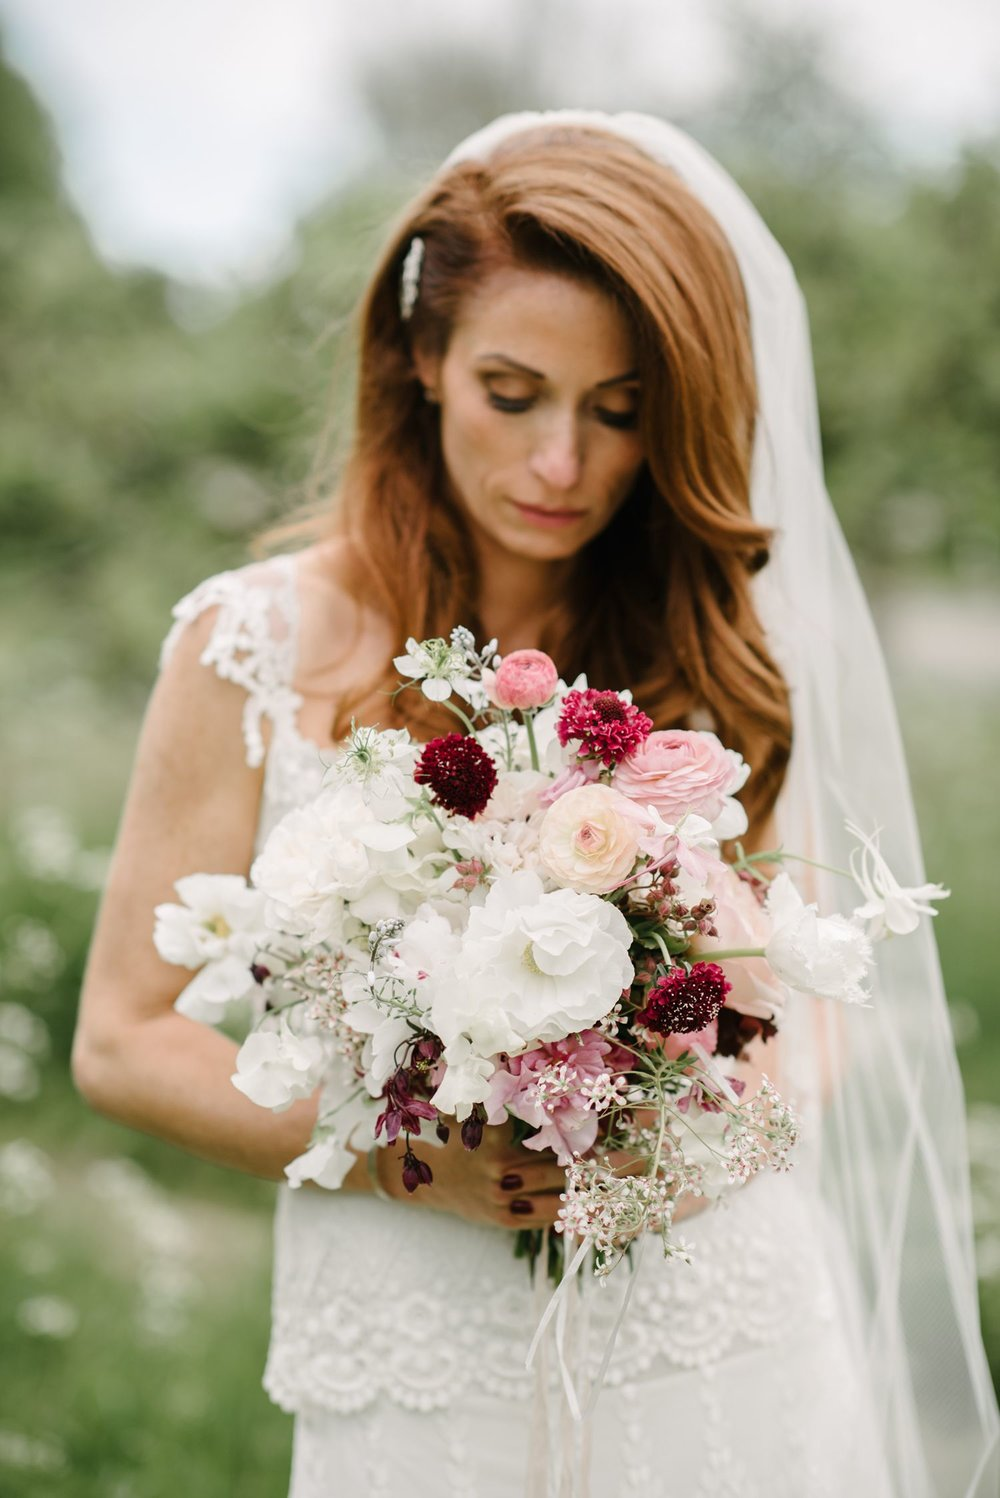 A palette of snow white and clustered accents of pale pink to a sumptuous maroon red. Photographed by  Dominique Bader Photography